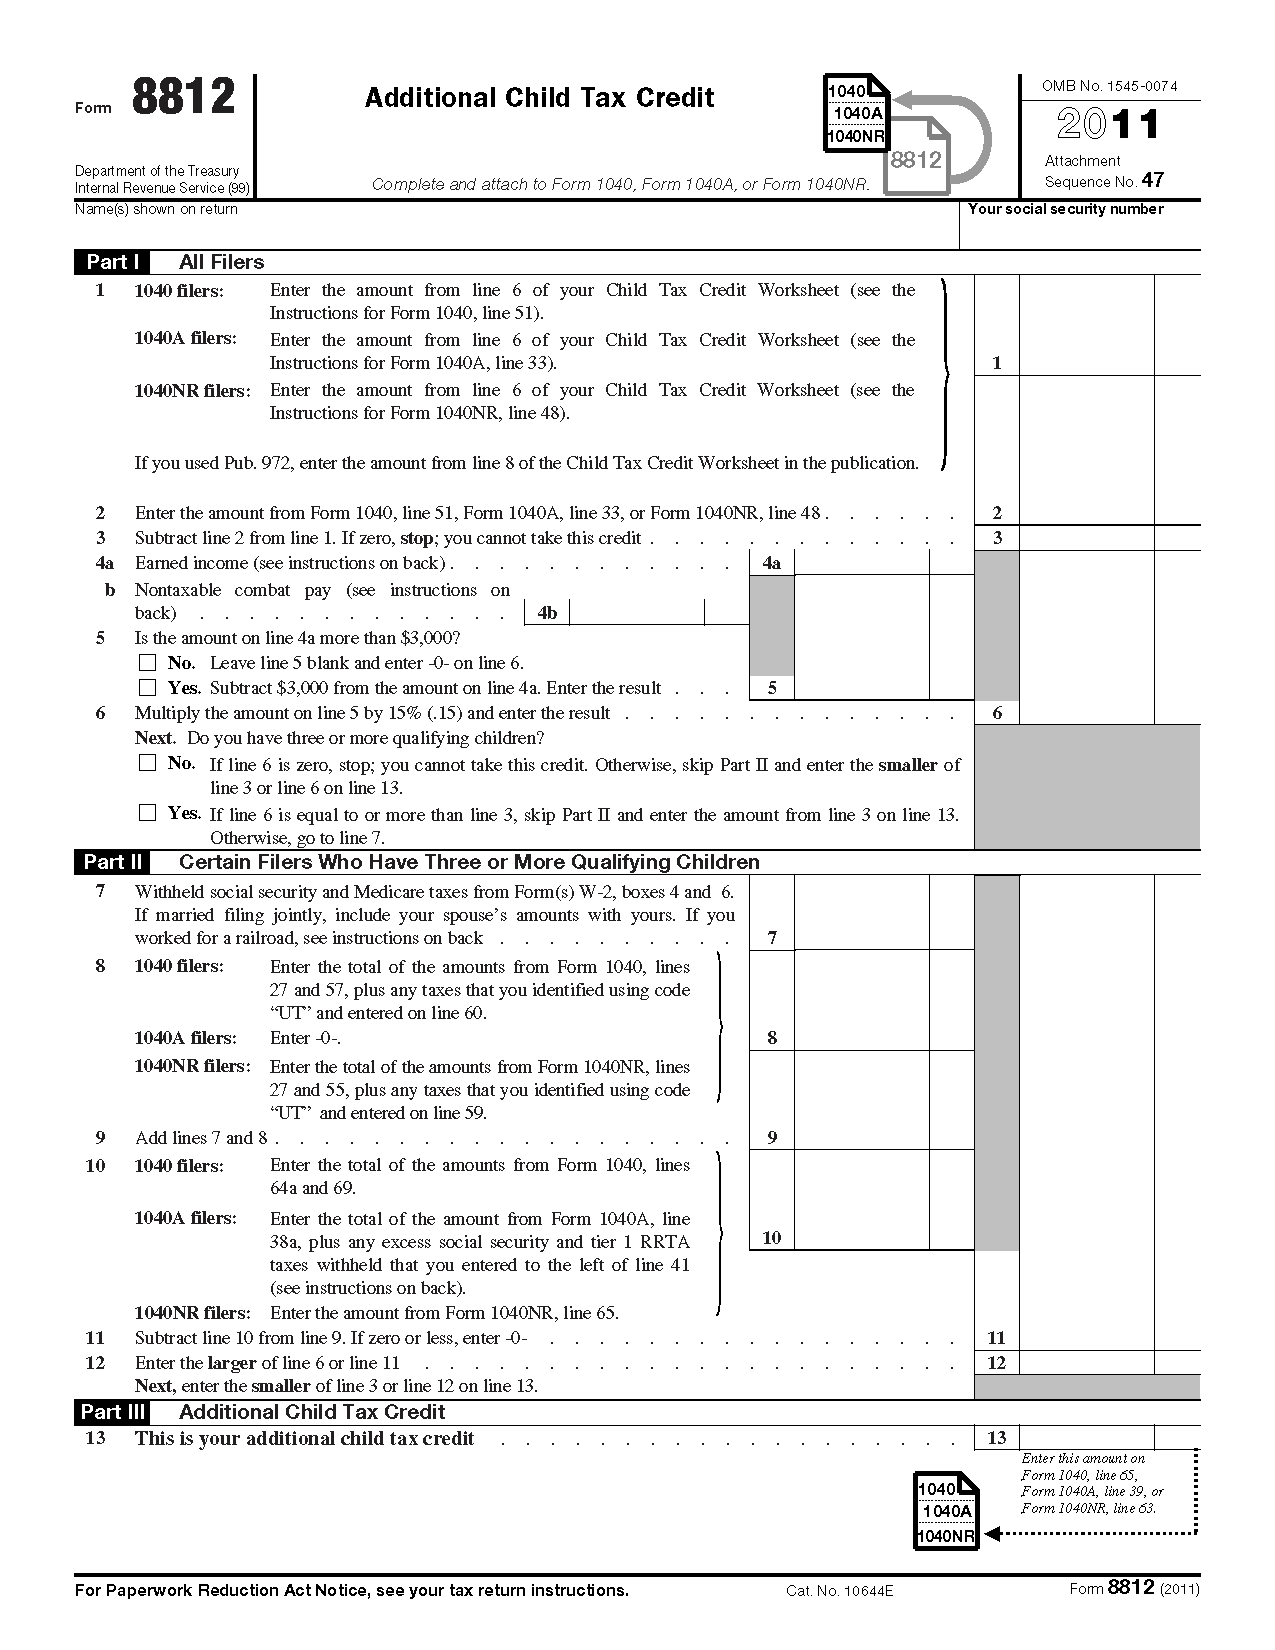 What Do You Need For The Irs Social Security Worksheet